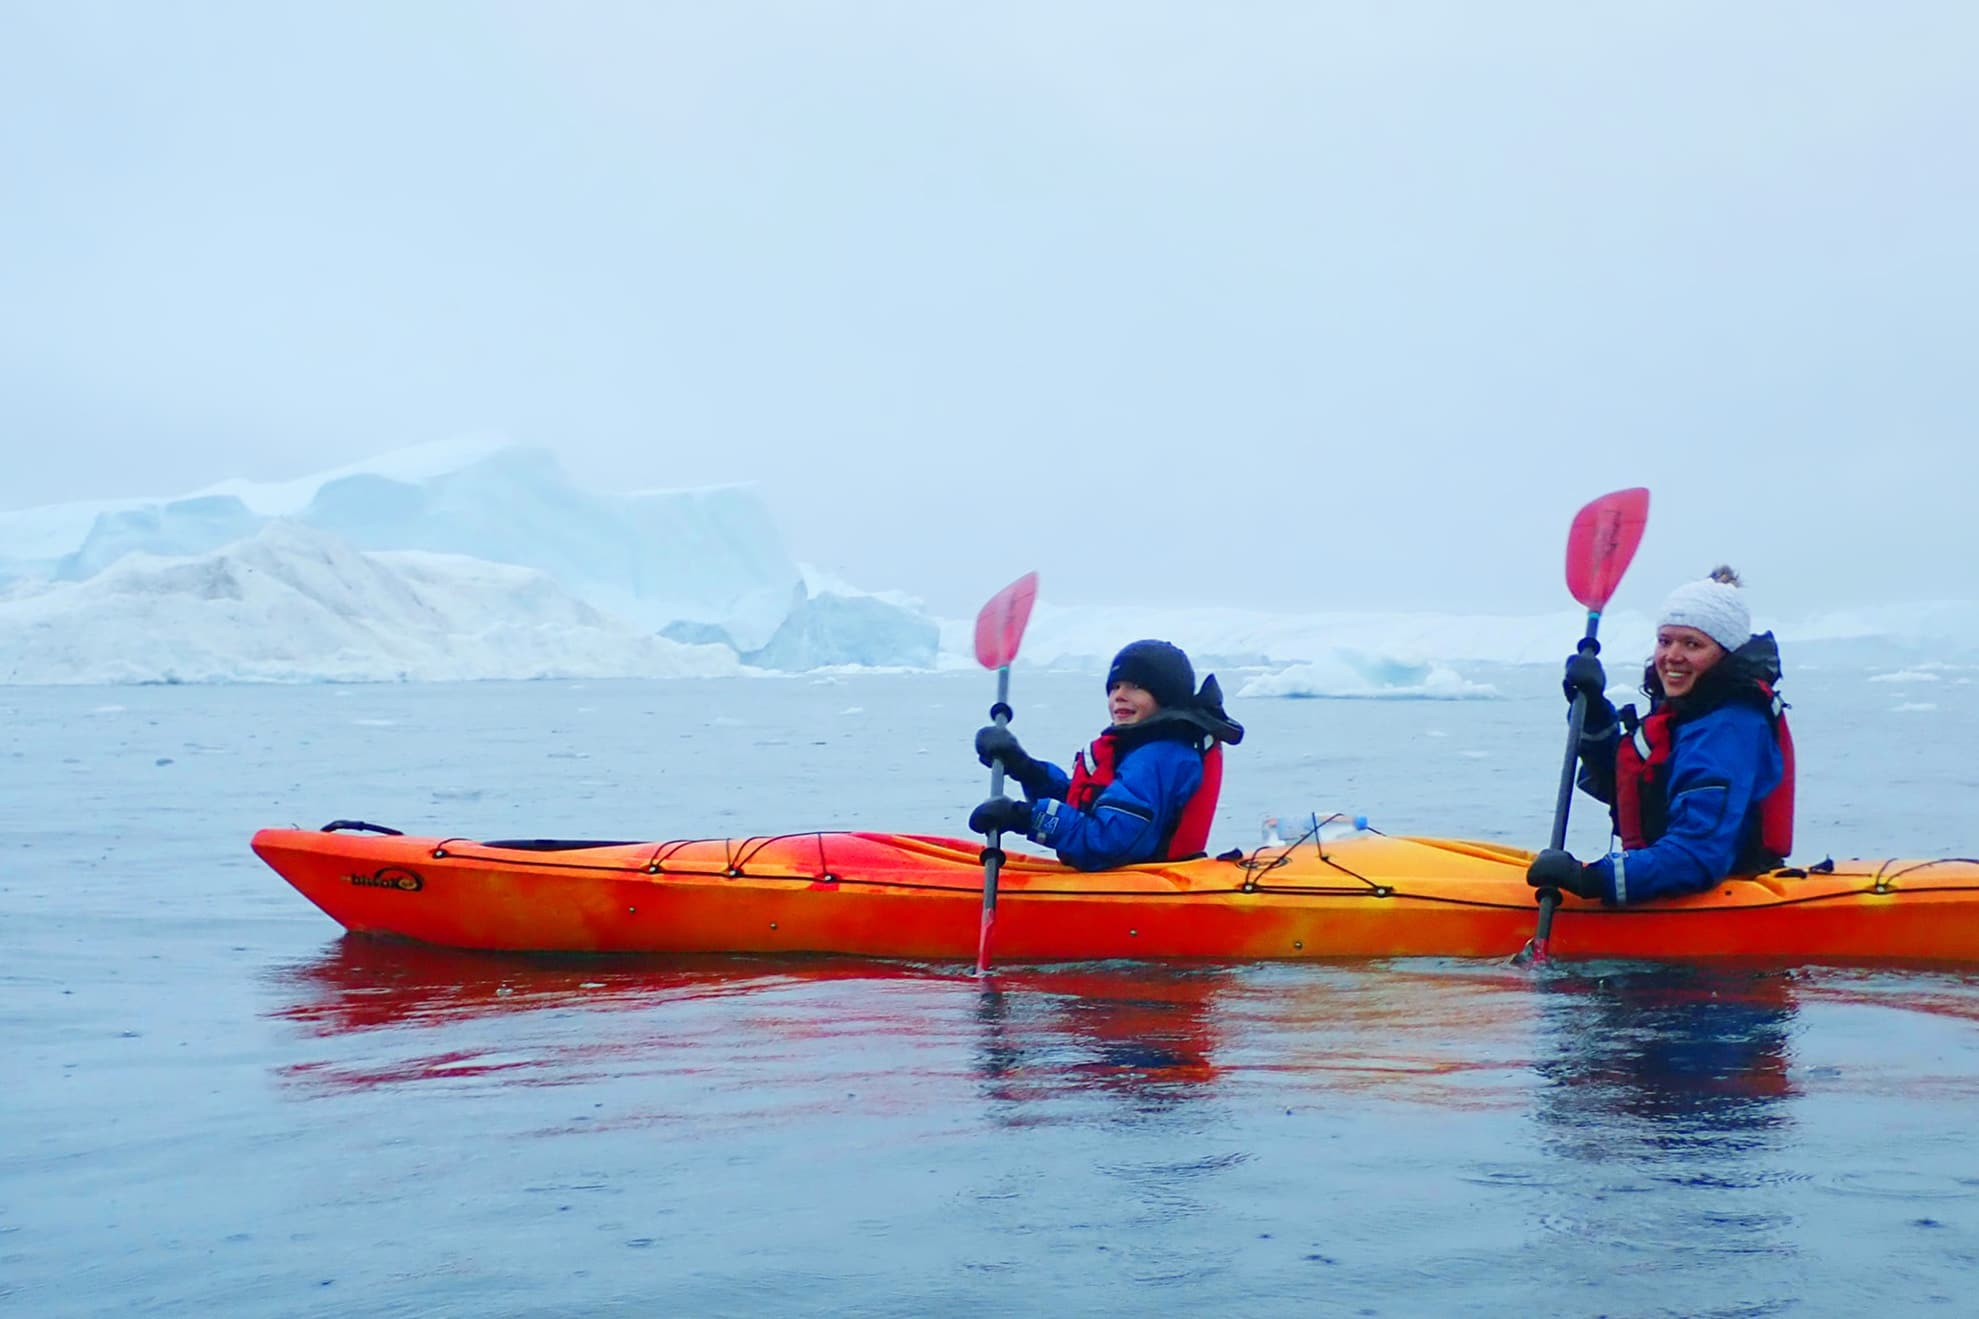 Family kayaking between icebergs in Greenland. Jurga Rubinovaite.